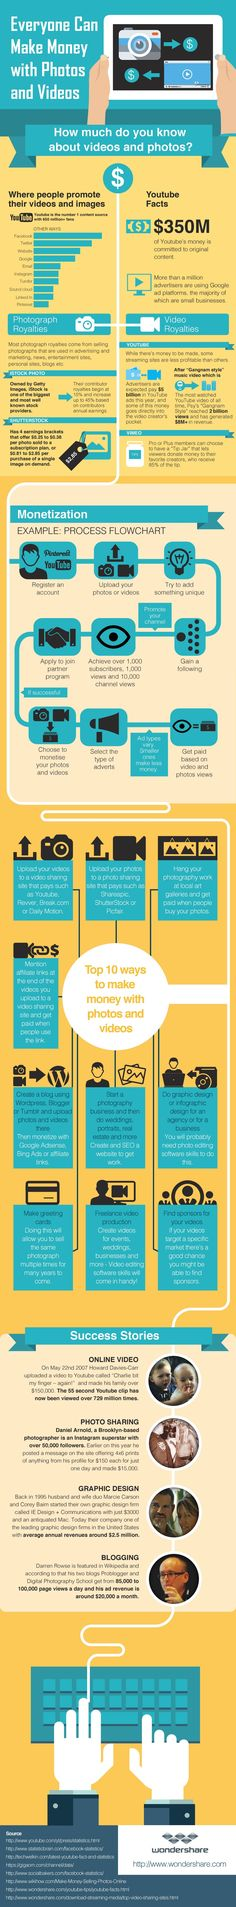 Earn Money Taking Pictures - How To Make Money With Photos And Videos Earn Money Taking Pictures - Photography Jobs Online Photography Jobs, Photography Business, Freelance Photography, Earn Money Online, Online Jobs, Way To Make Money, Quick Money, Taking Pictures, Extra Money